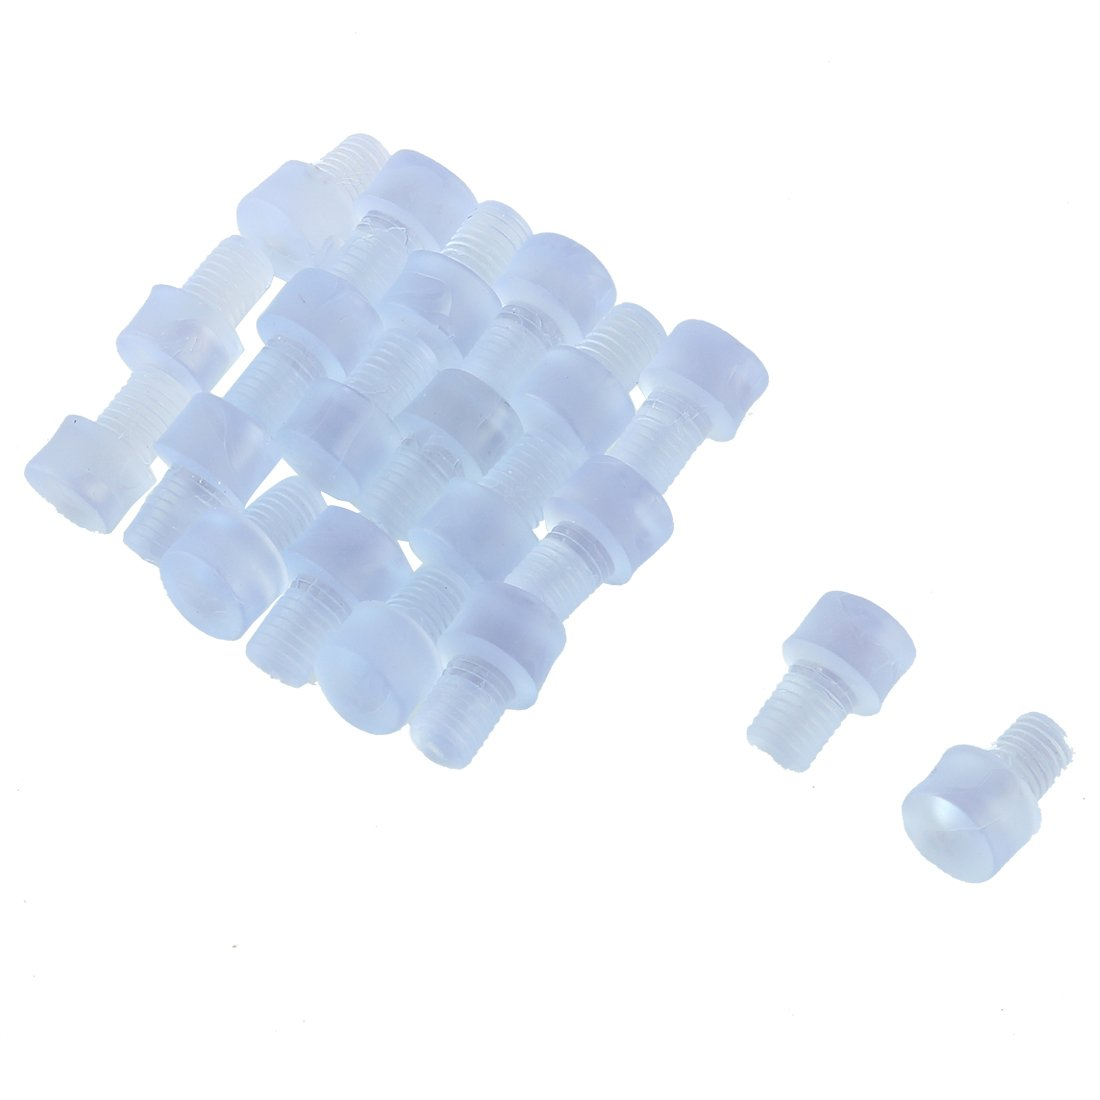 uxcell Rubber Household Furniture Cabinet Table Soft Stem Bumpers 6mm Dia 20pcs Clear a16071200ux0368